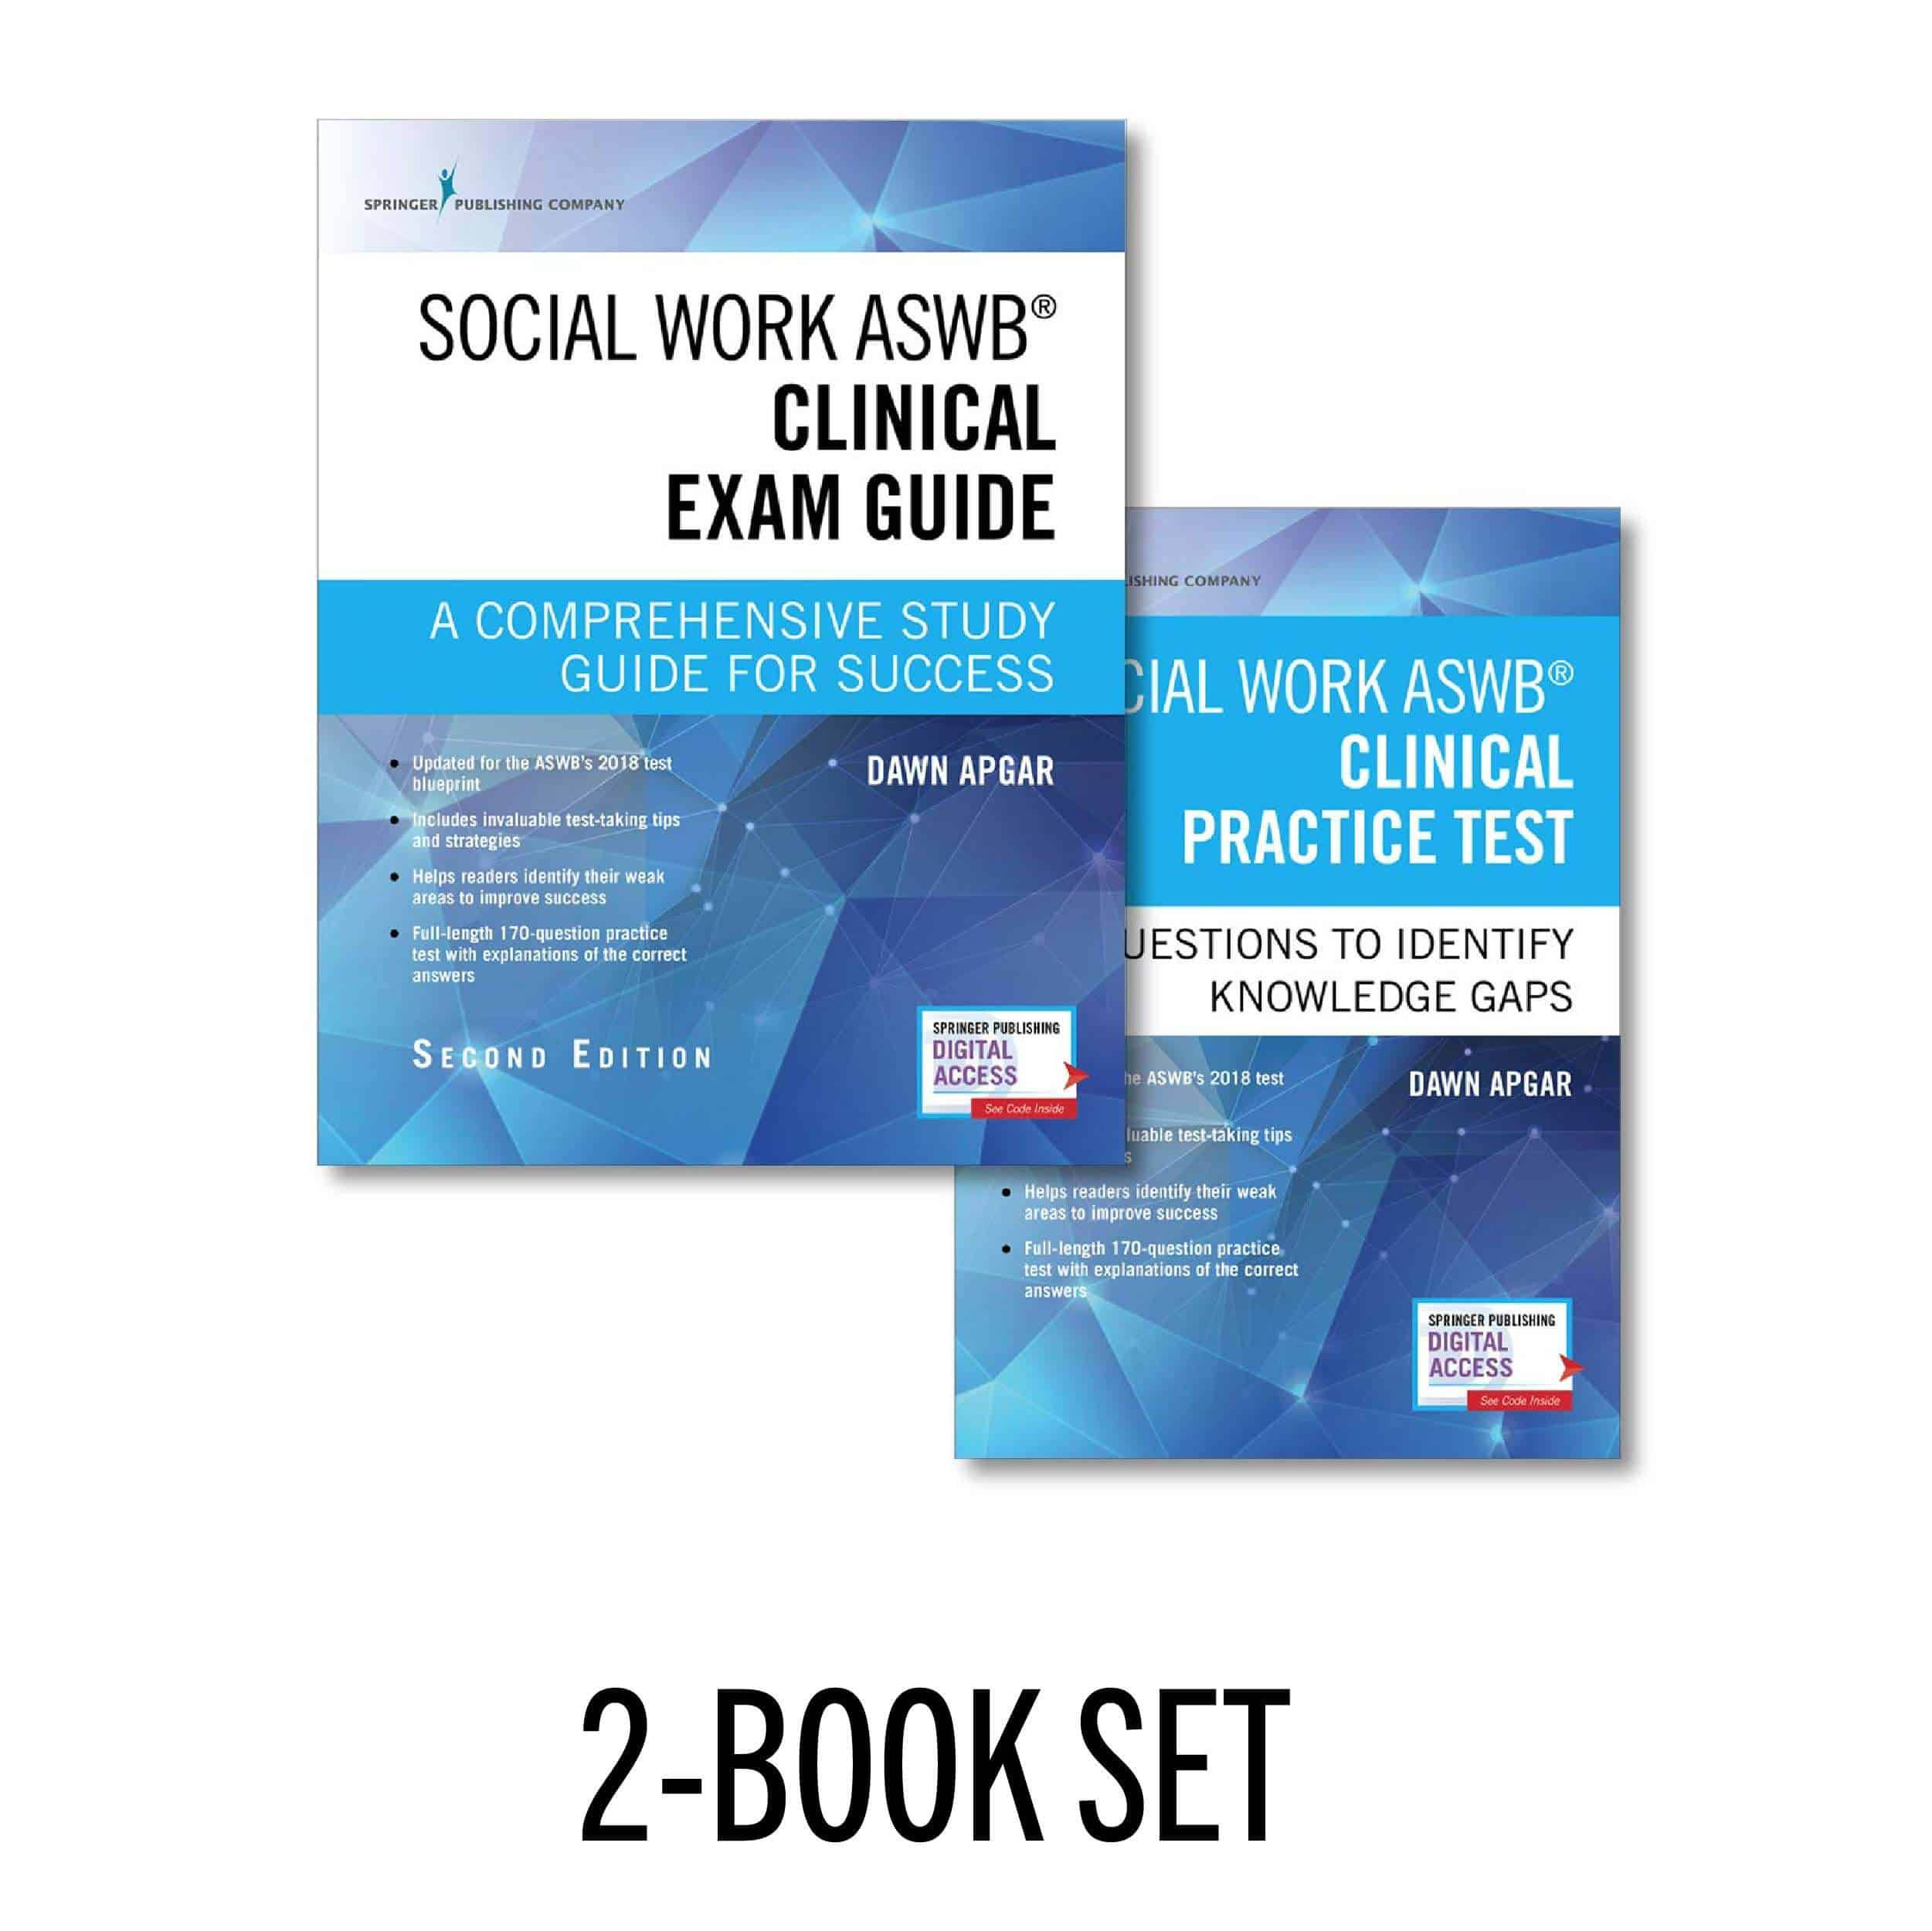 An Image of the Social Work Test Prep Book called the ASWB Clinical Exam Guide